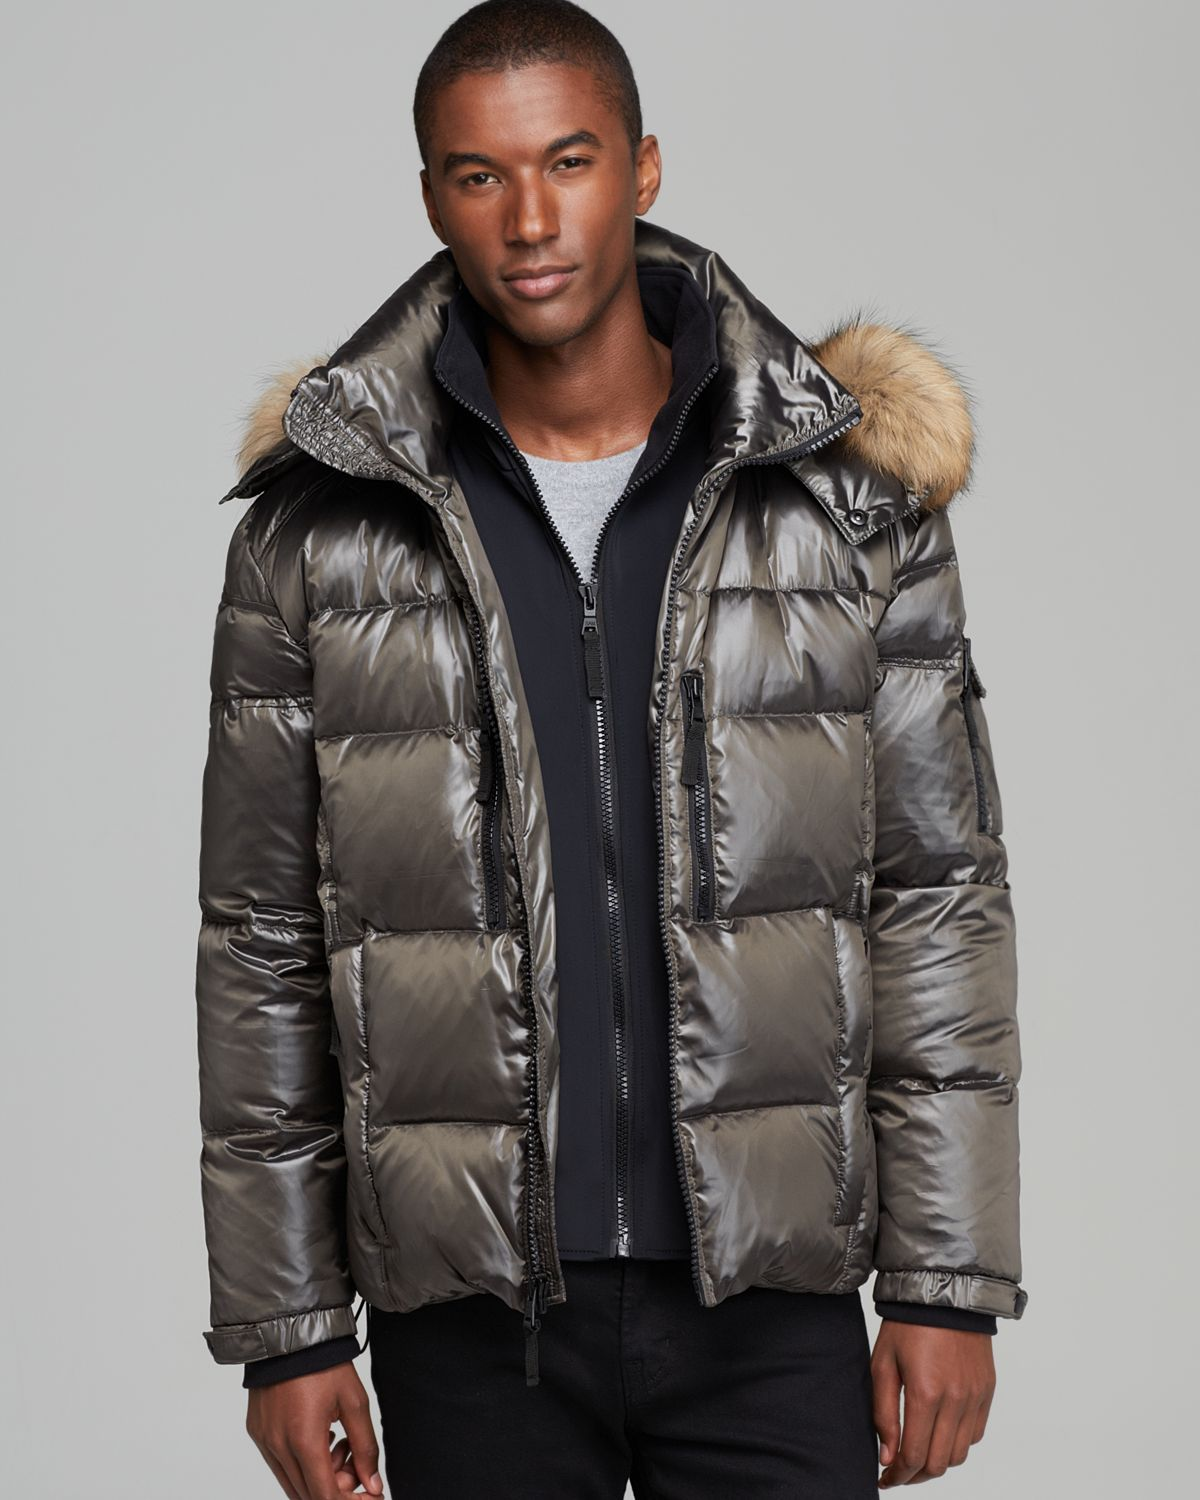 Lyst - Sam. Mountain Quilted Down Jacket in Natural for Men : quilted down jacket mens - Adamdwight.com